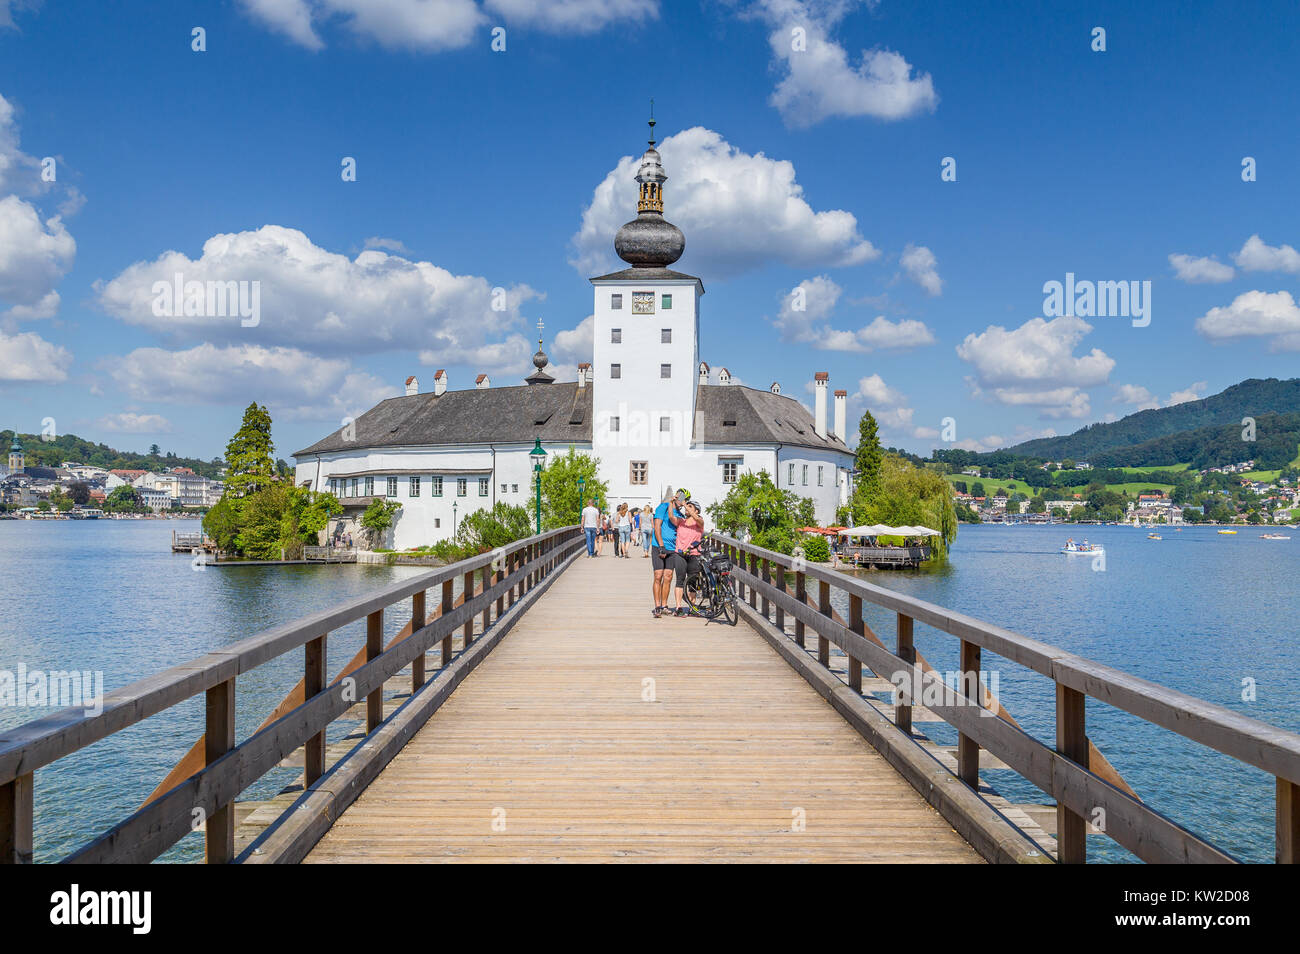 Tourist couple taking a selfie in front of famous Schloss Ort on a sunny day with blue sky and clouds in Gmunden, - Stock Image